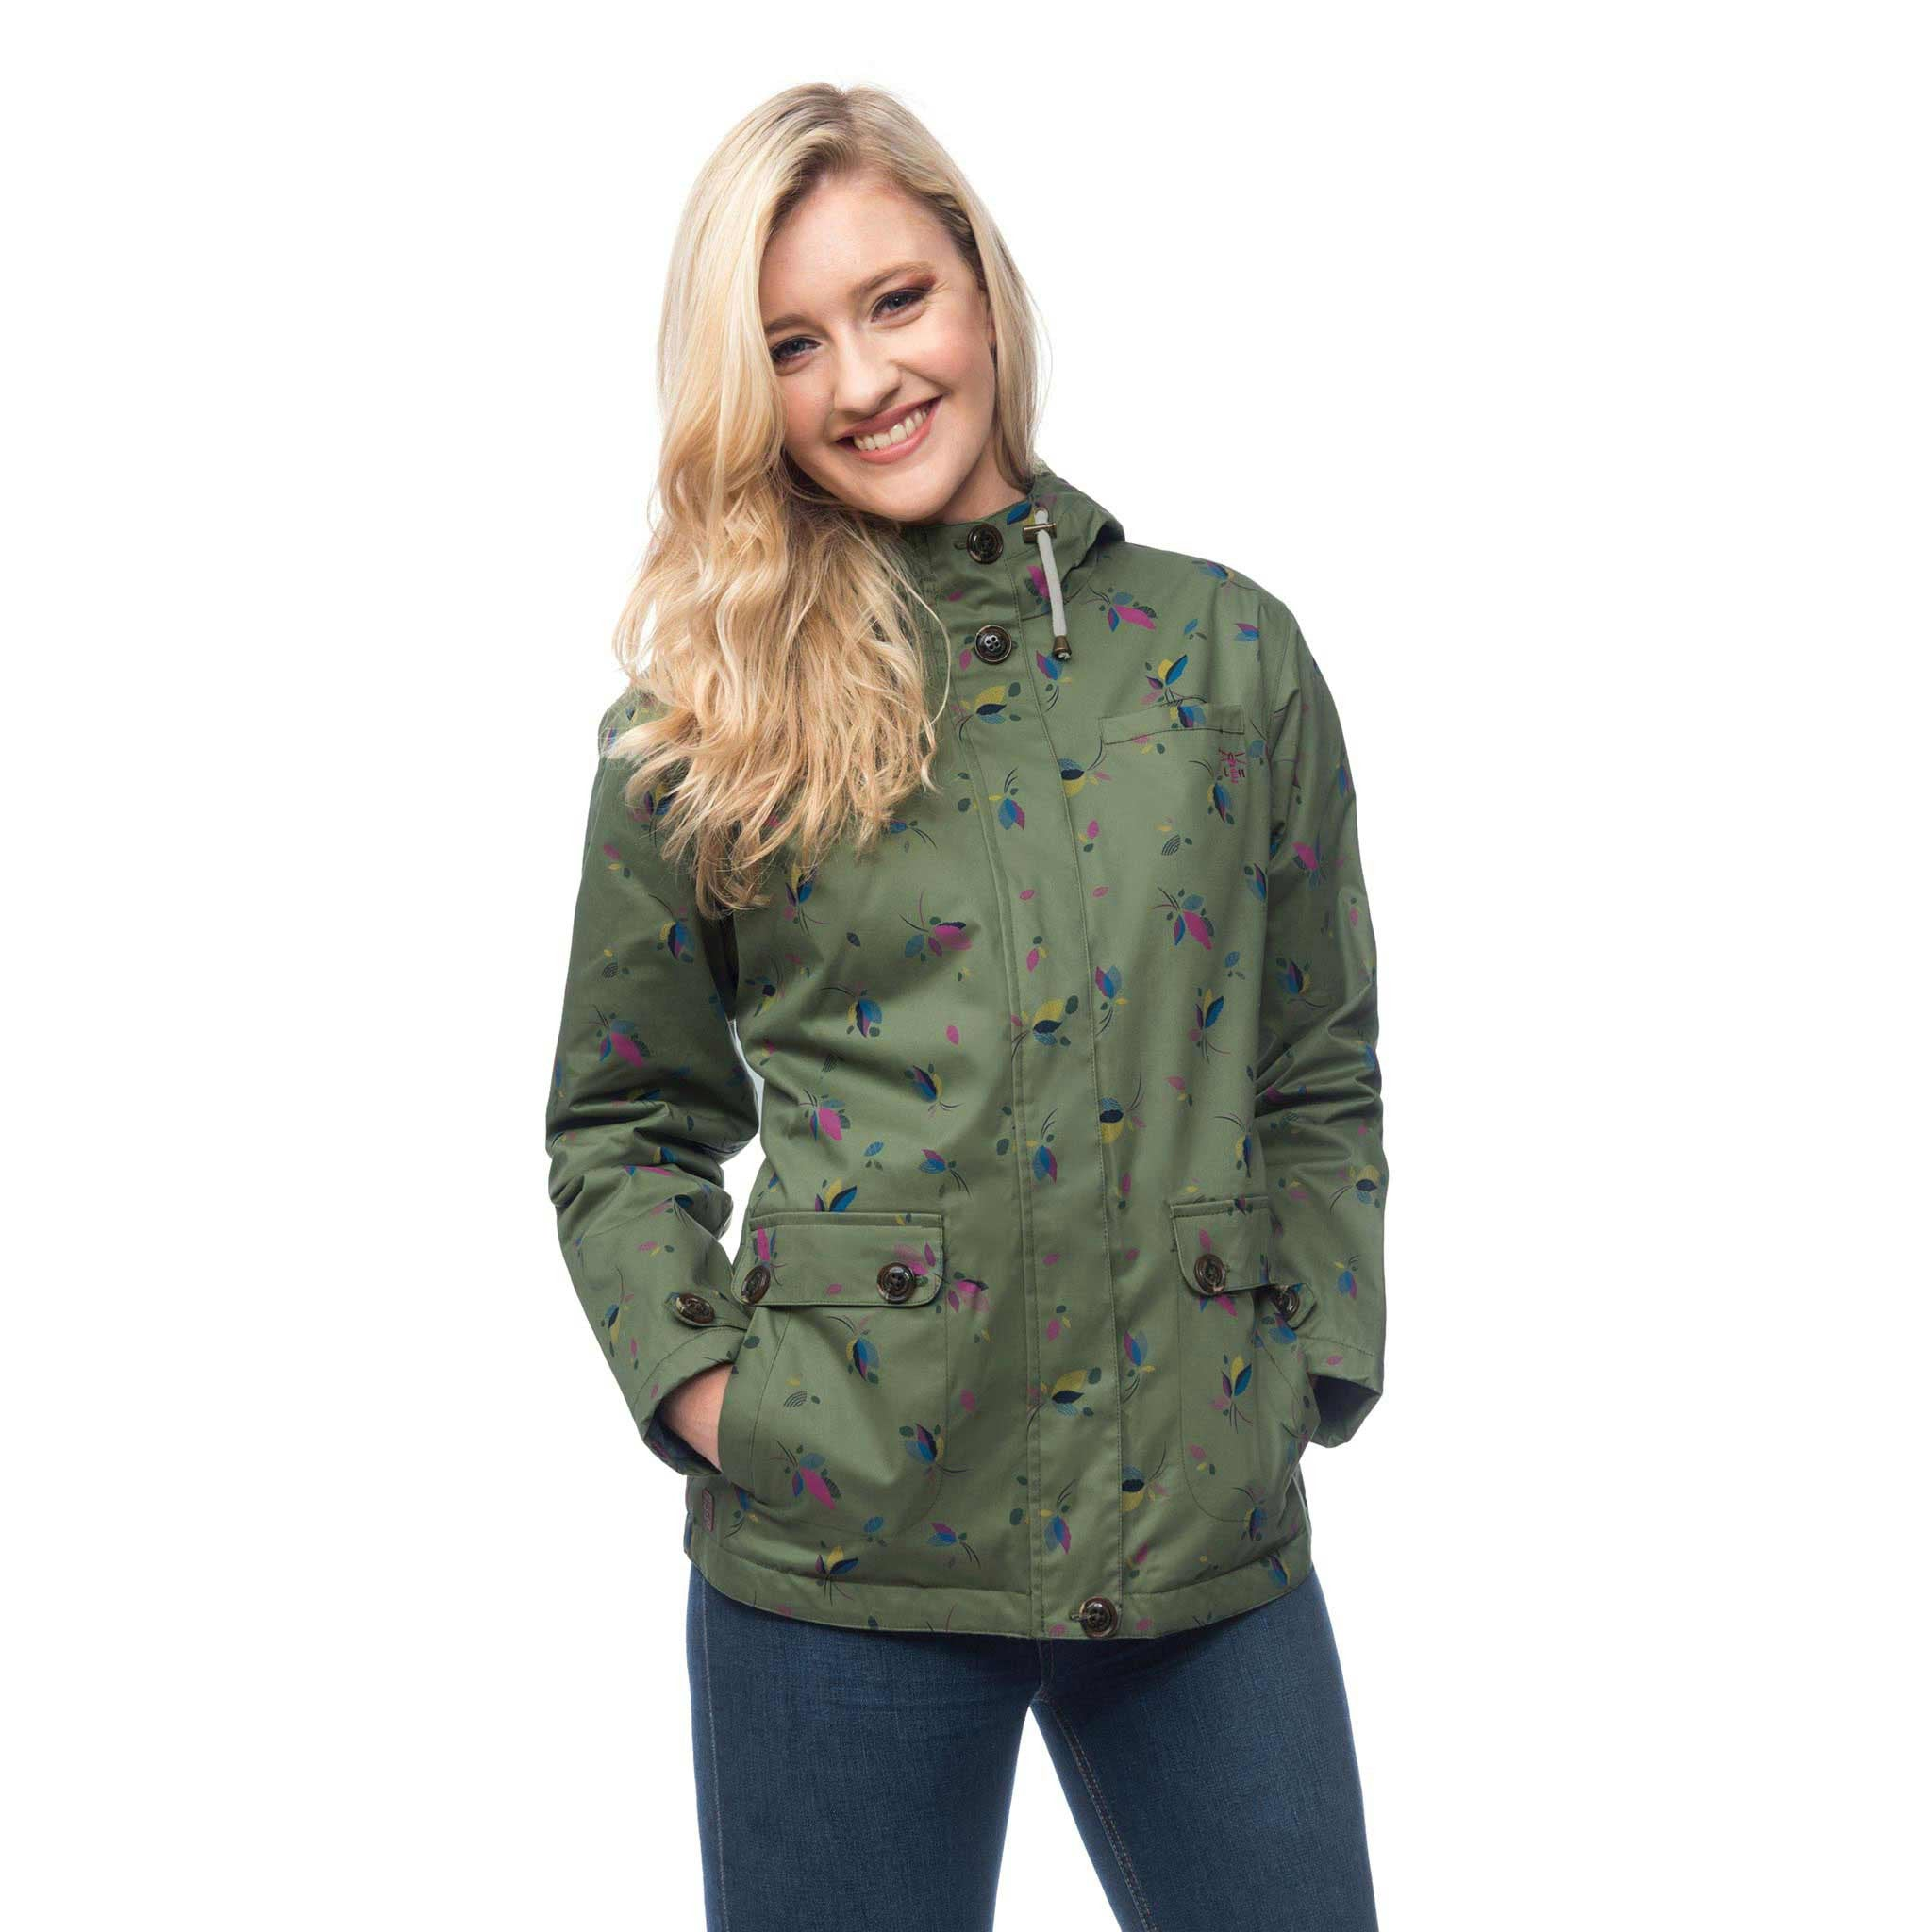 Lighthouse Siena Womens Waterproof Hooded Jacket in Green. Zipped & Buttoned. Hood down. Hands in pockets.